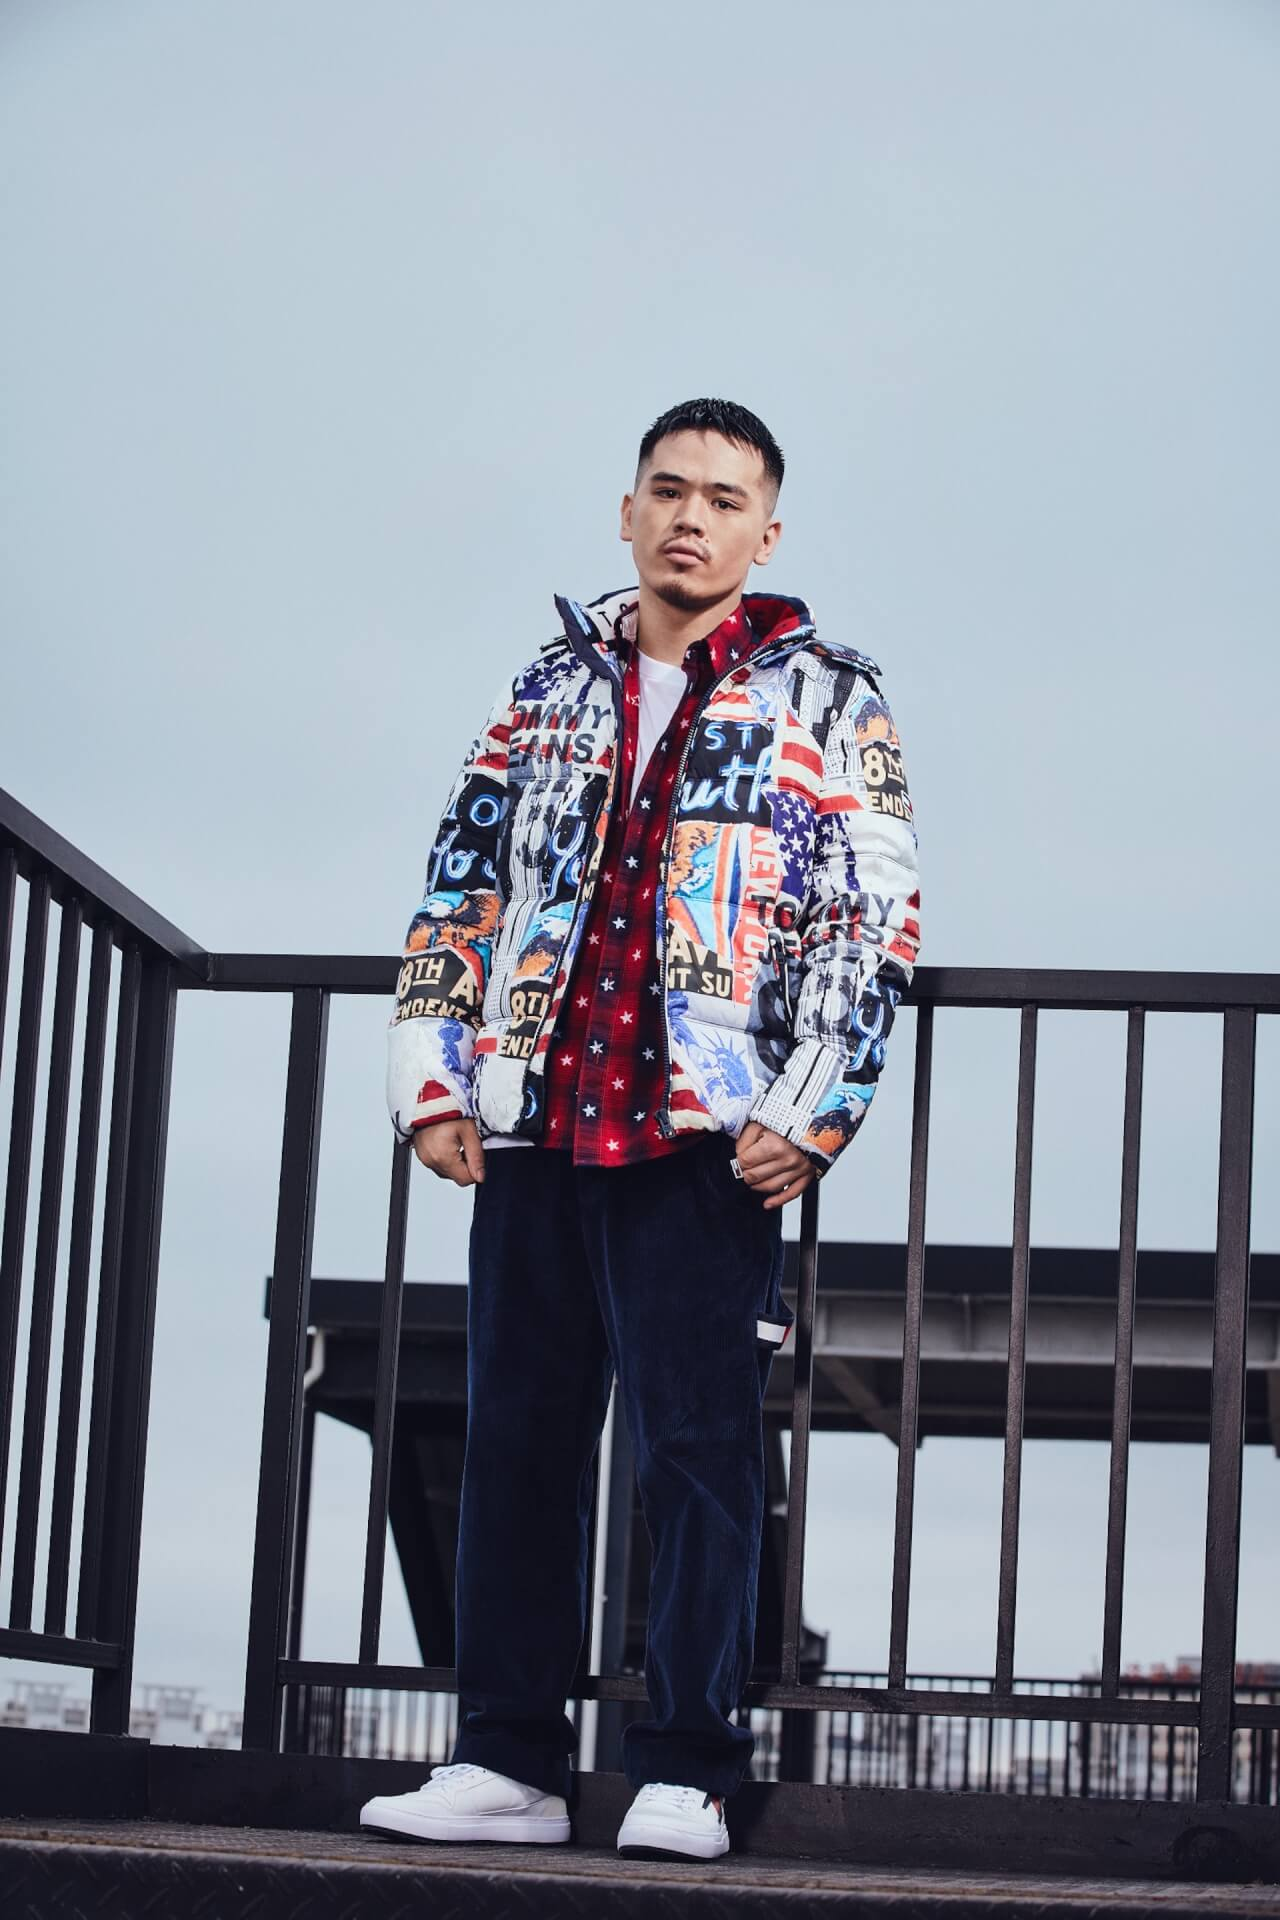 BAD HOP・T-Pablowや韓国人ラッパー・RAVIなどを起用したTOMMY JEANS 2019 Fall Collectionのビジュアルが公開 lifefashion191011_tommyjeans_5